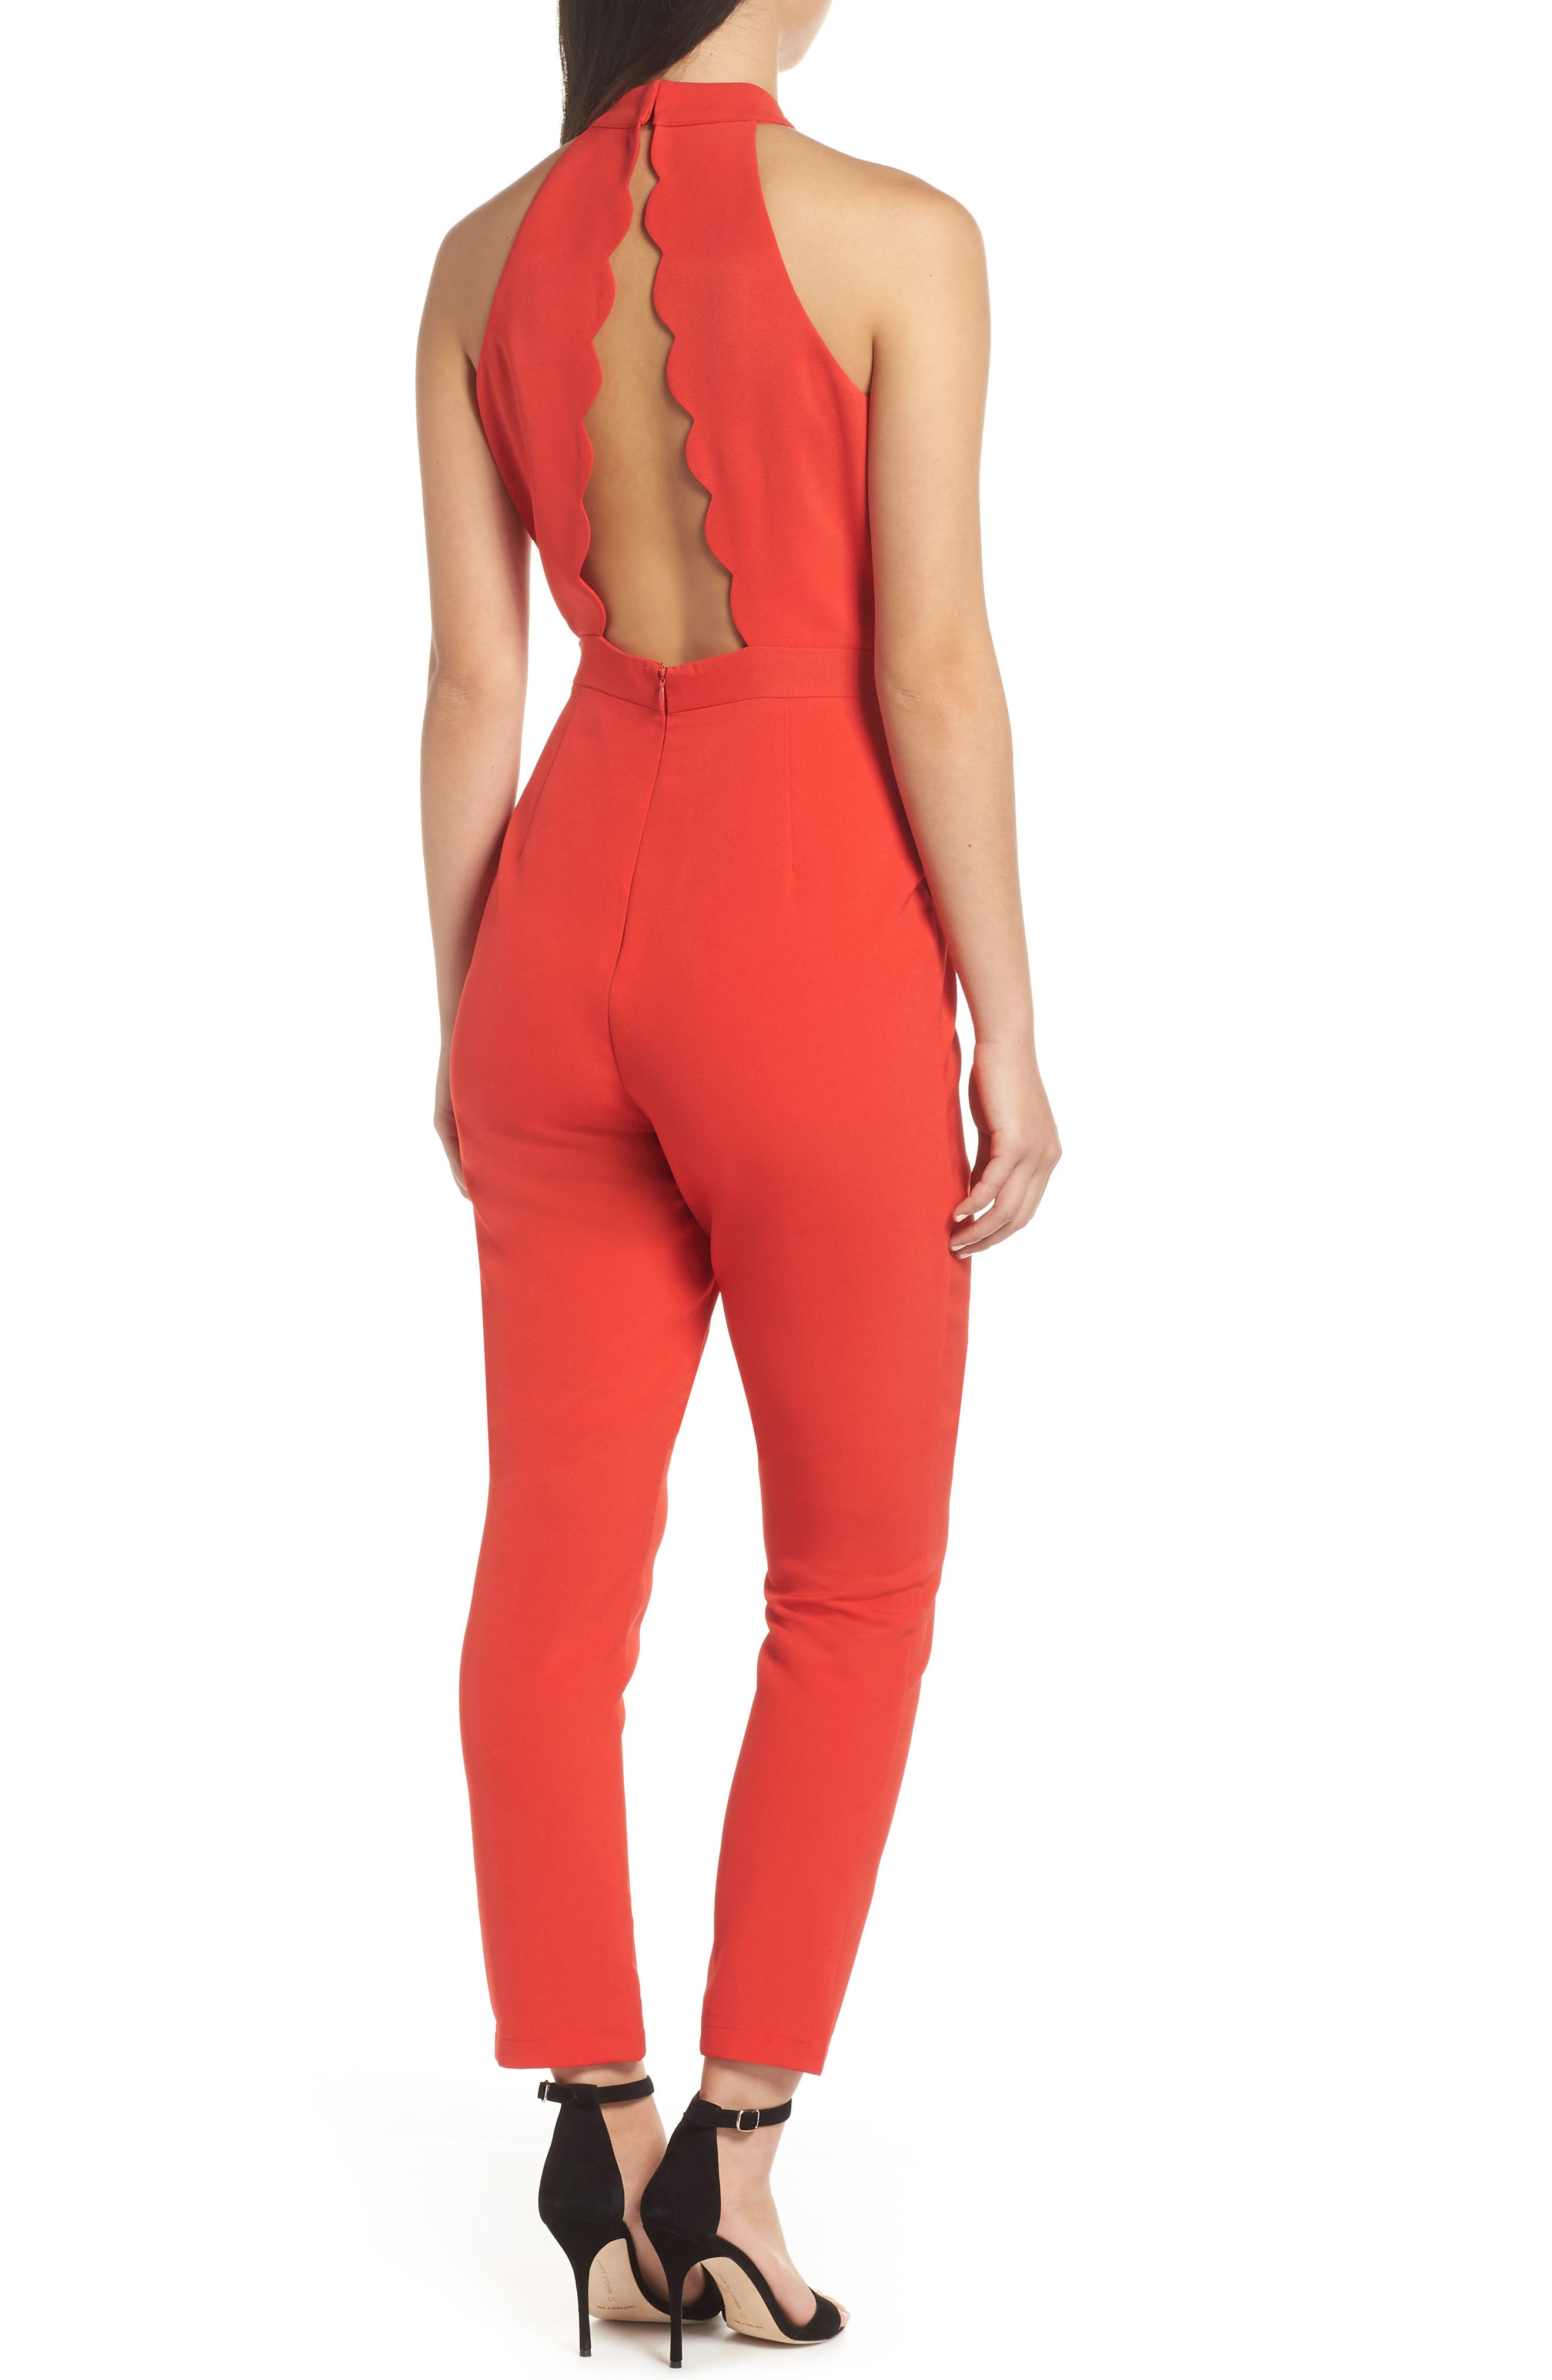 ADELYN RAE,                             Shaylie Scalloped Back Jumpsuit,                             Alternate thumbnail 2, color,                             600